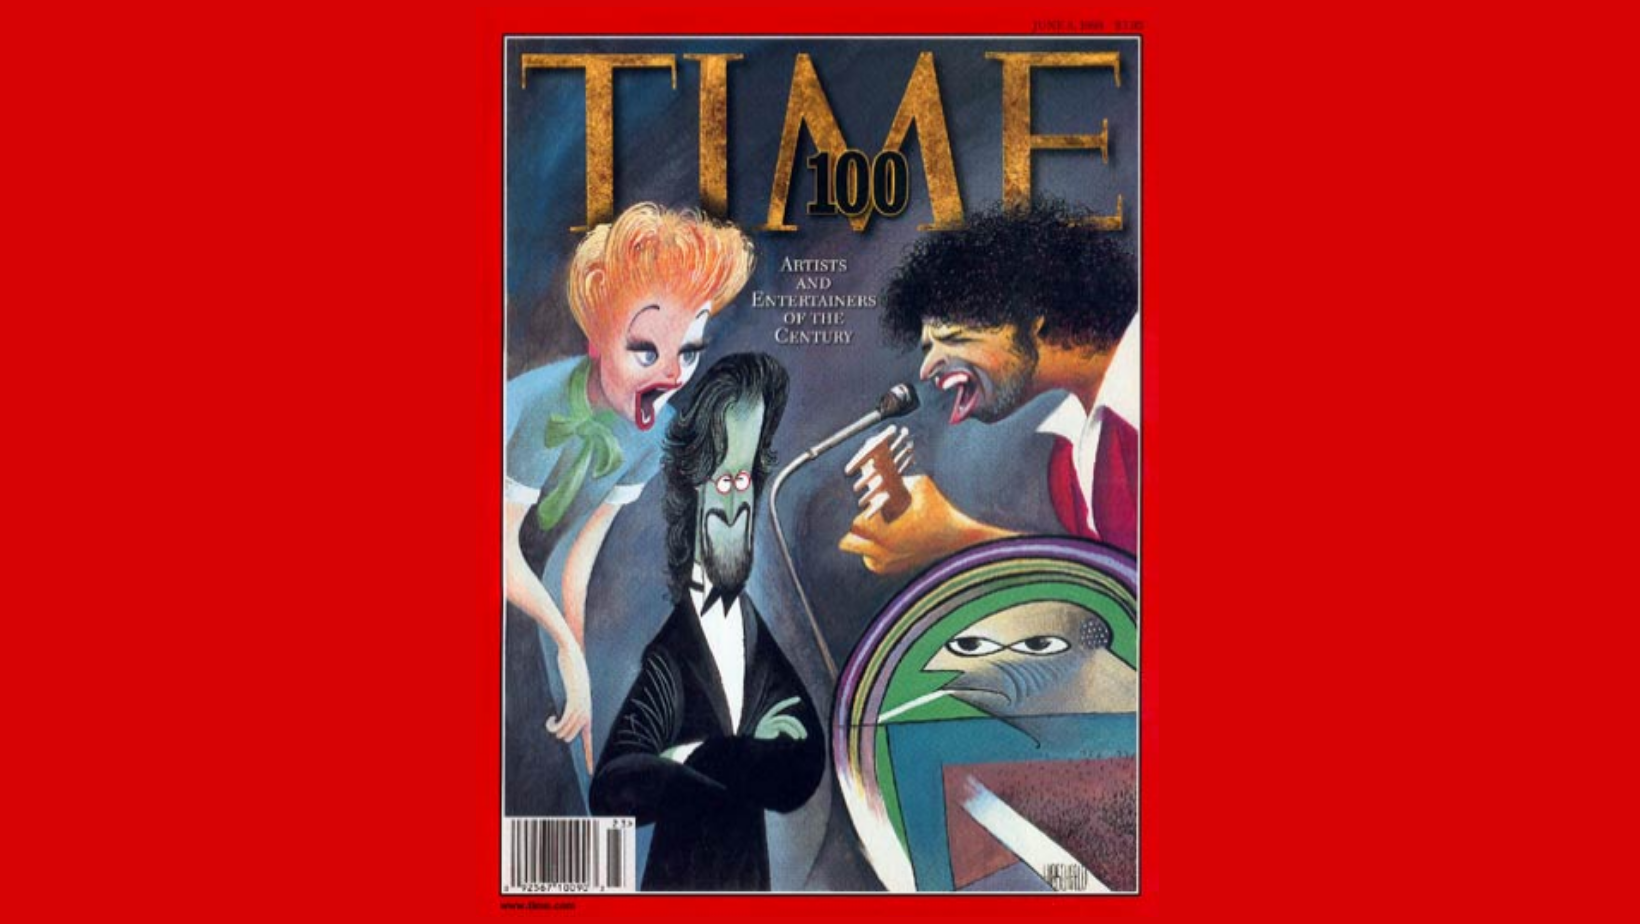 People in the world of art and entertainment most influential of the twentieth century. Time 100